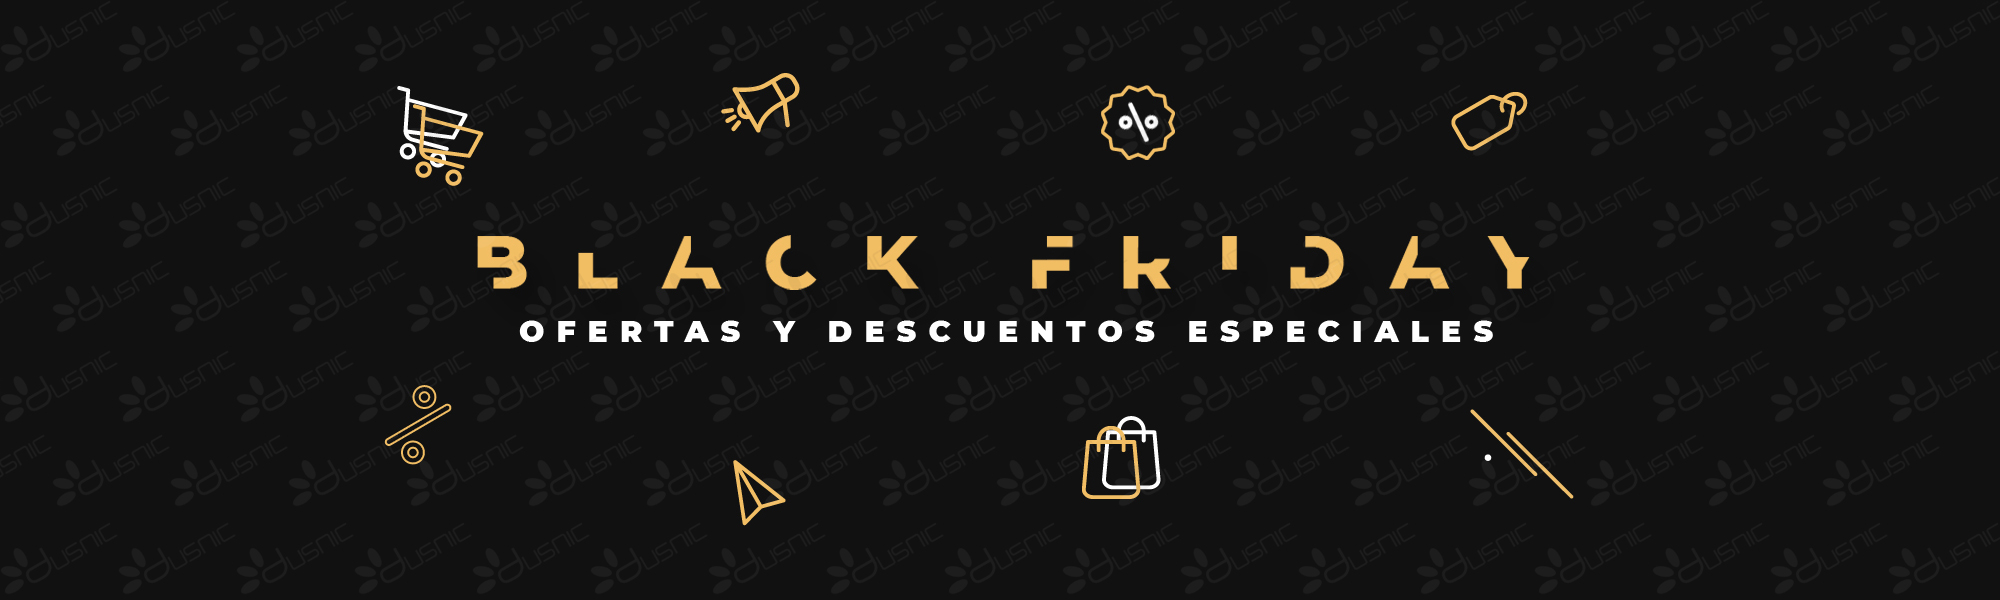 Slider Atrevido Black Friday